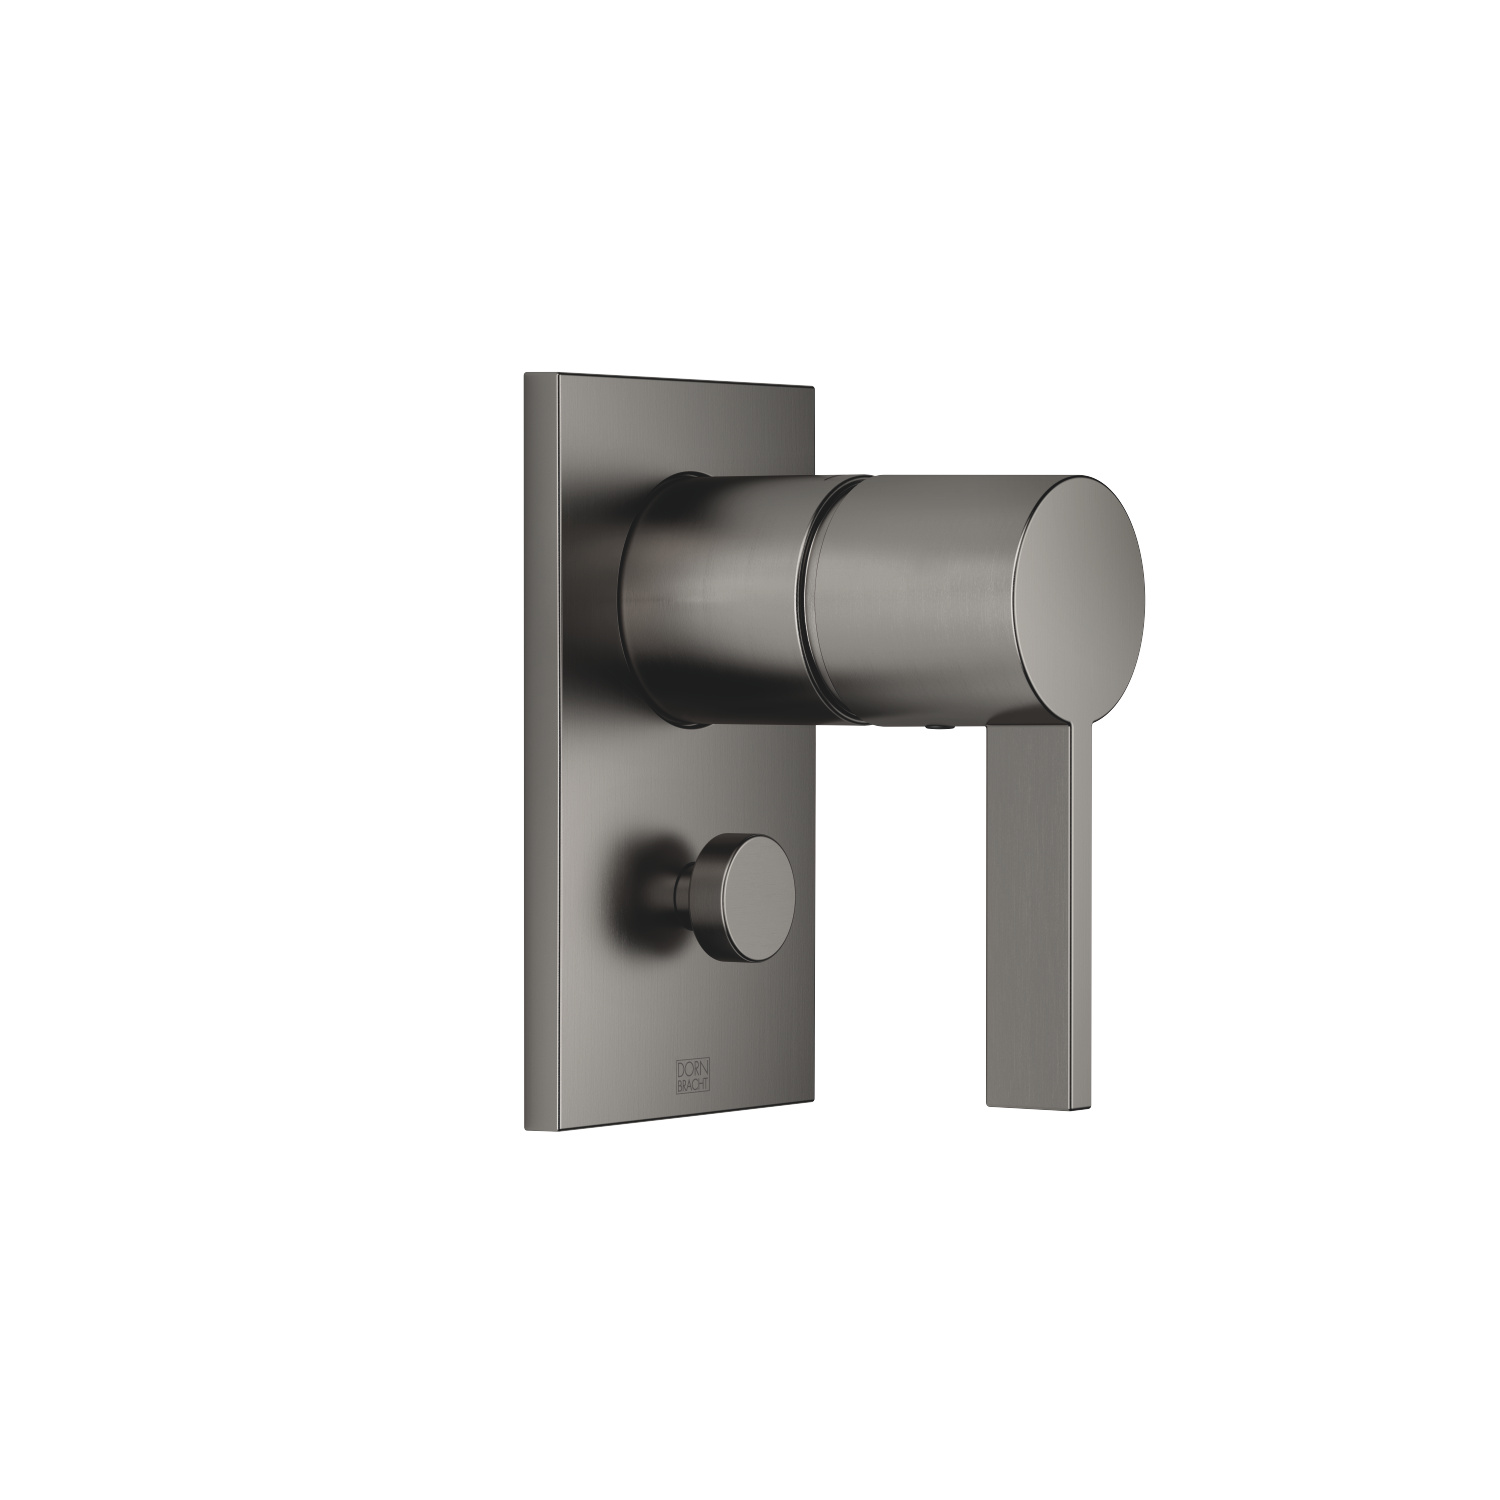 Concealed single-lever mixer with diverter - Dark Platinum matt